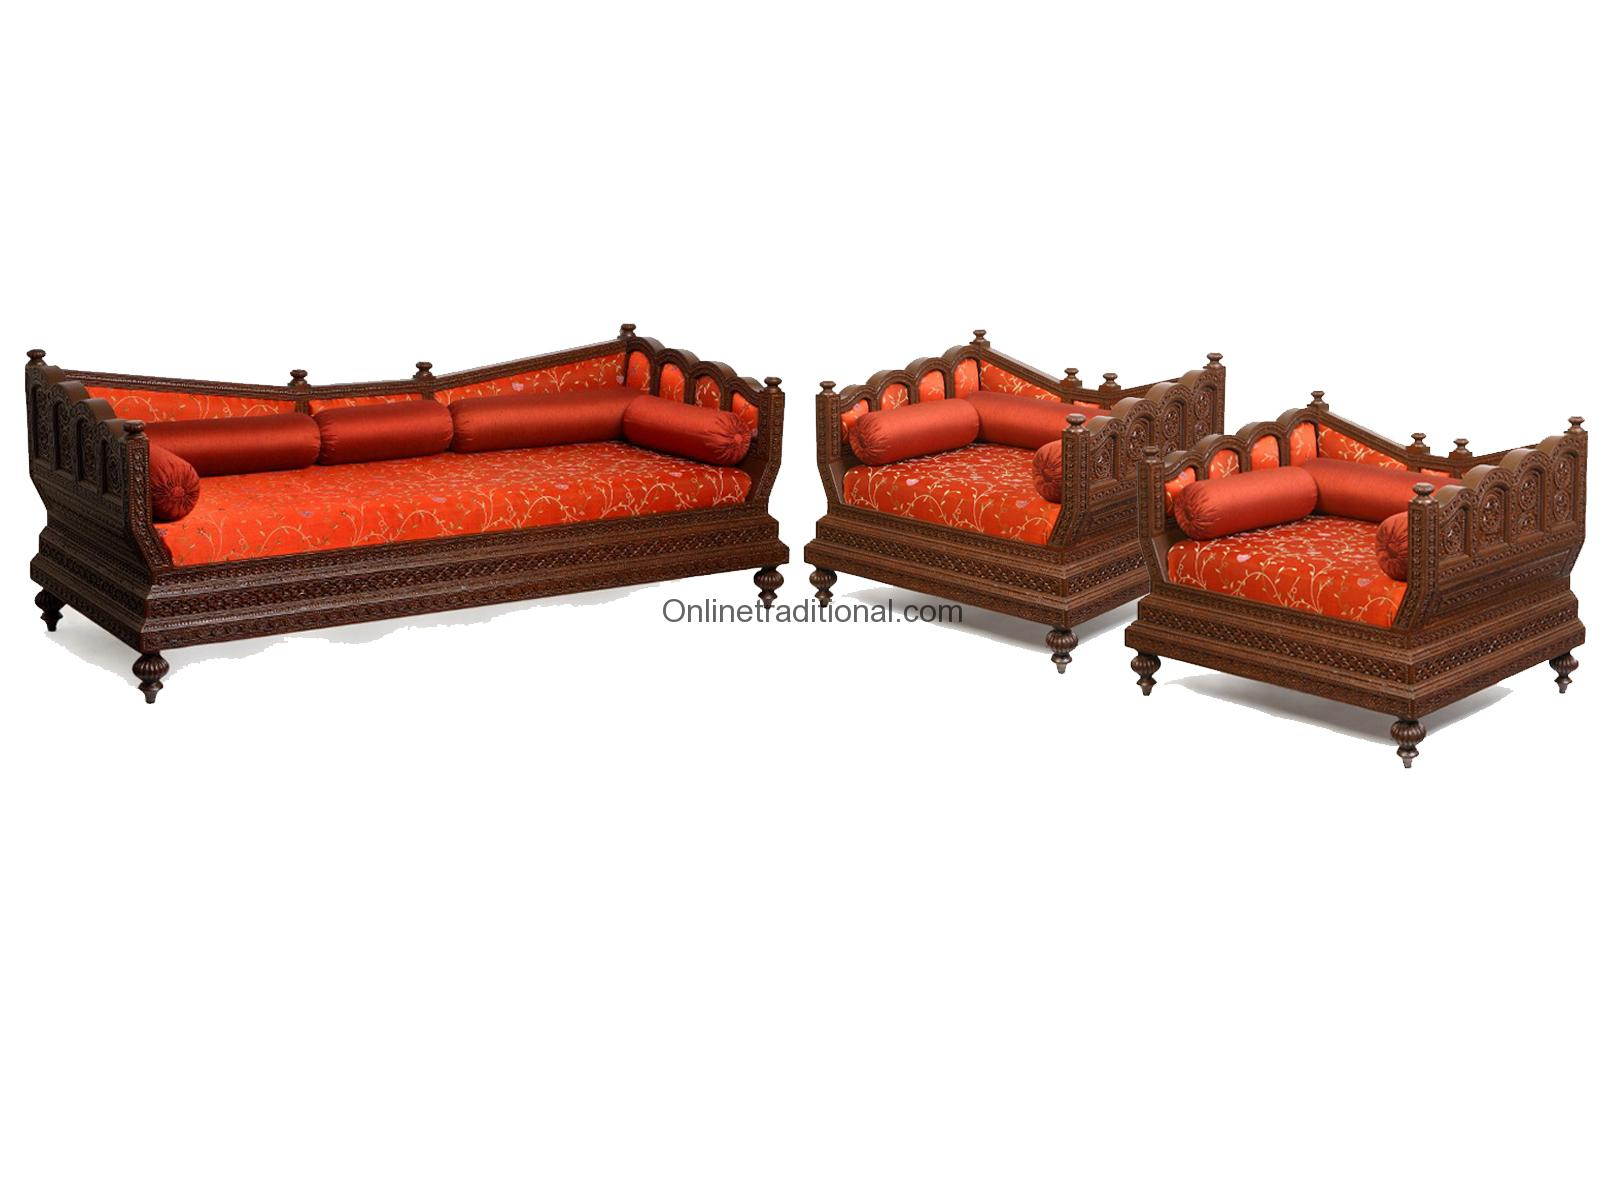 Sofa Set Furniture Diwan Sofa Set Indian Wooden Sofa Set For Home And Office Pearl